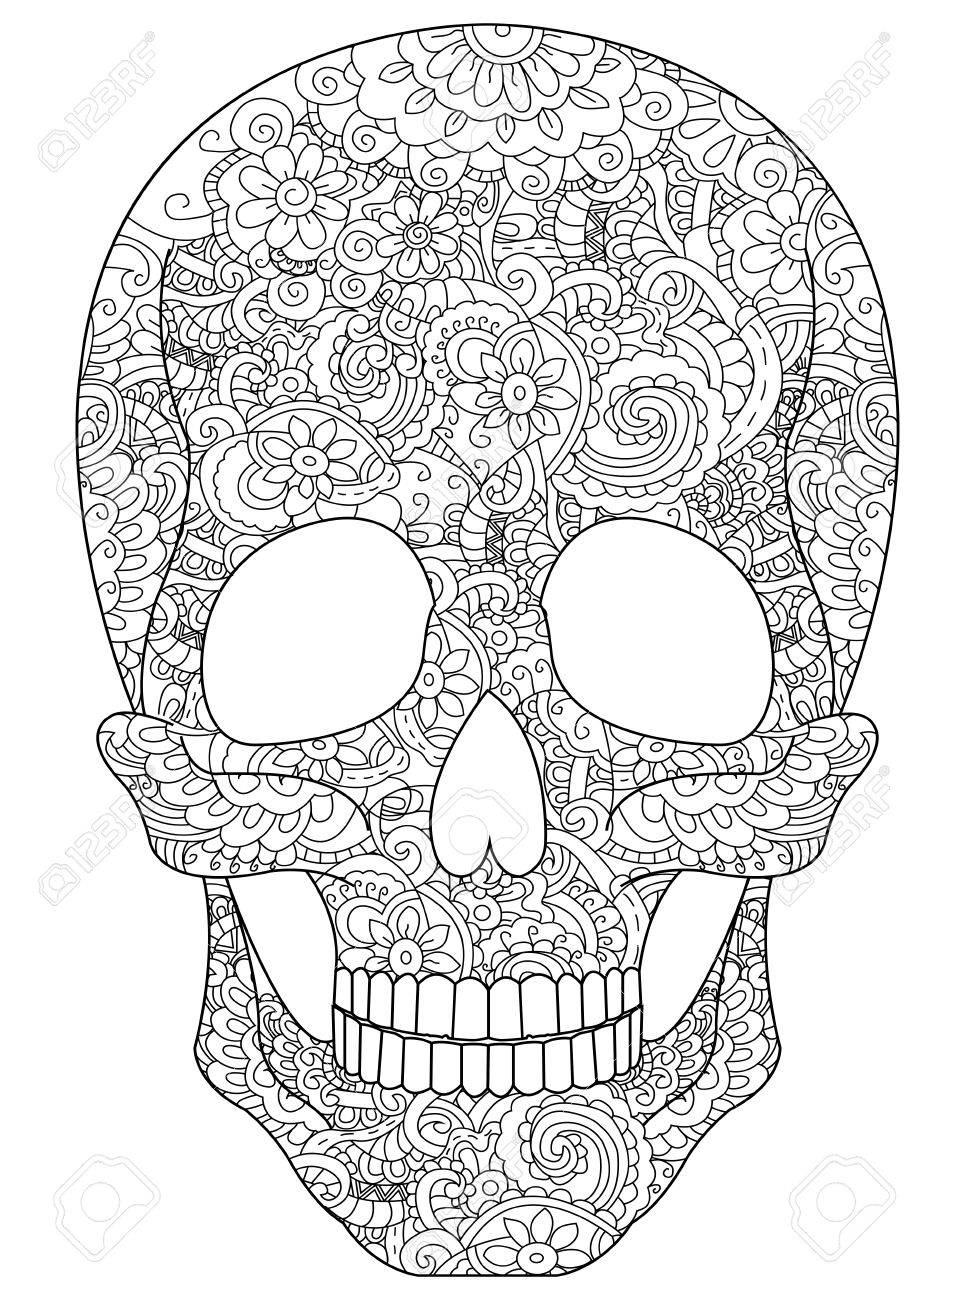 Skull Coloring Book For Adults Vector Illustration Anti Stress